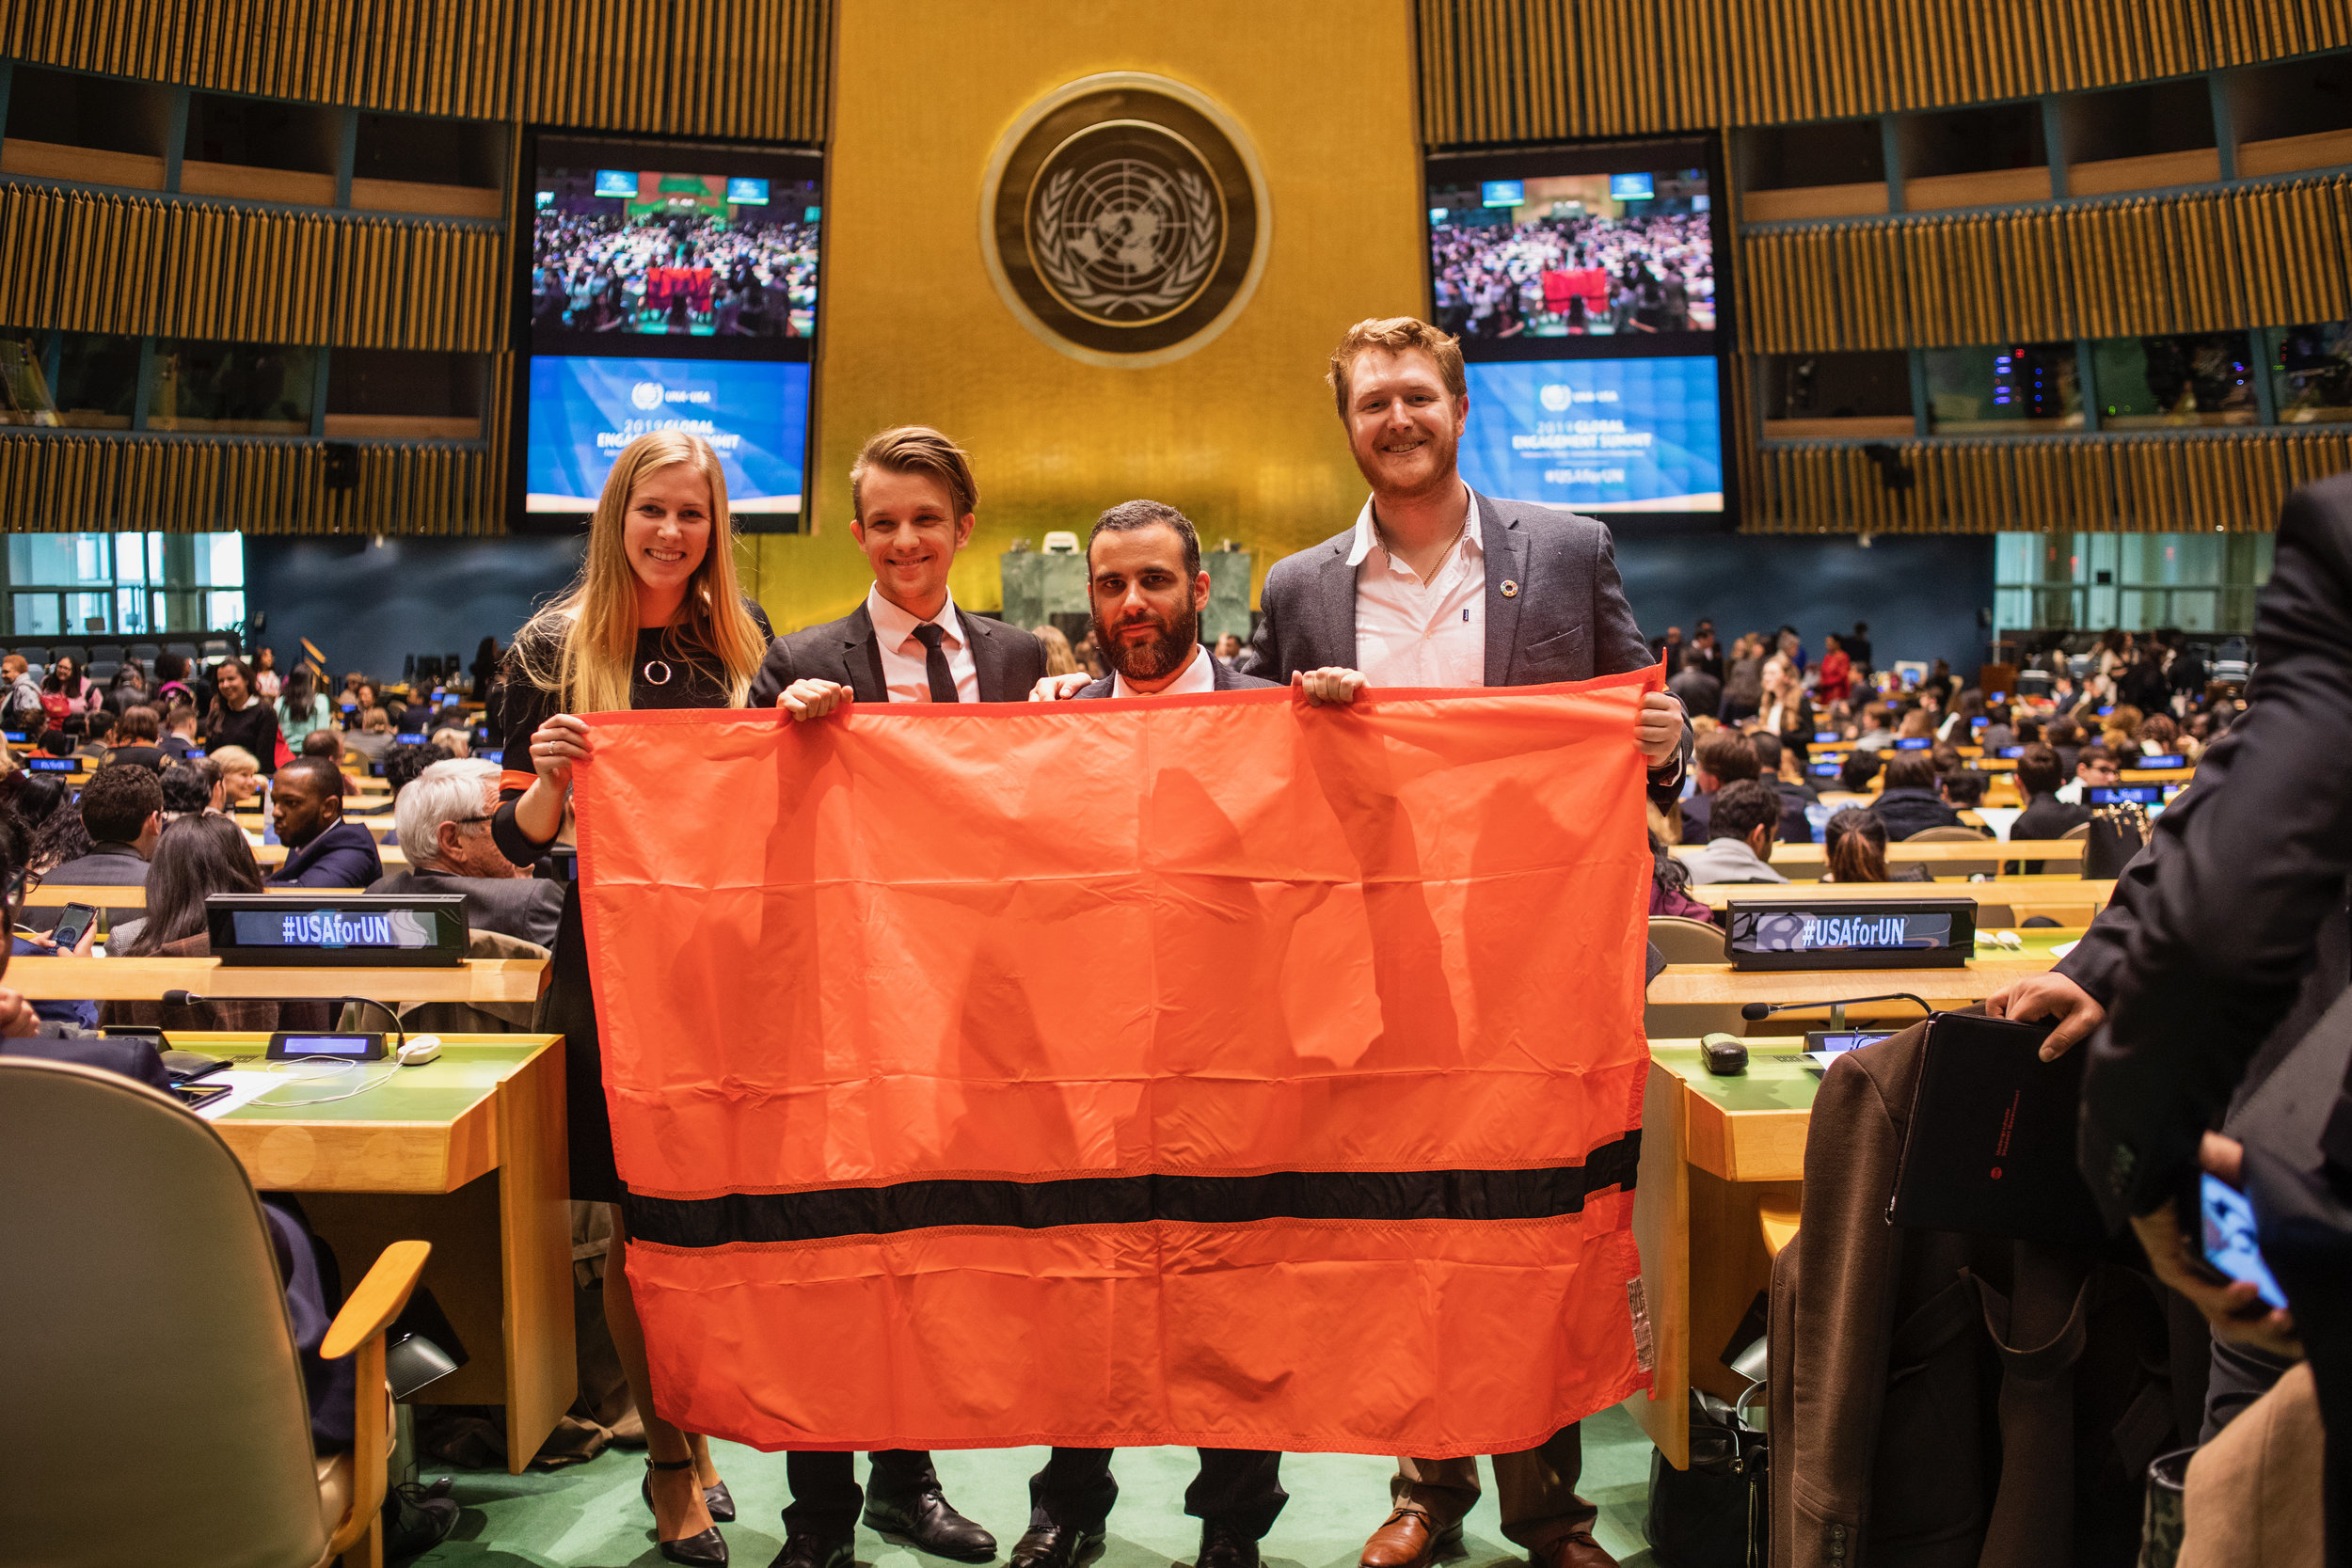 The IOR delegation can be seen holding a gift, the Refugee flag, from the Refugee Nation at the New York HQ, 2019 United Nations Global Engagement Summit. Pictured from left to right: Caroline Kurdej, Sebastian Agignoae, Juan Lazo Jr., Christopher Dowell.